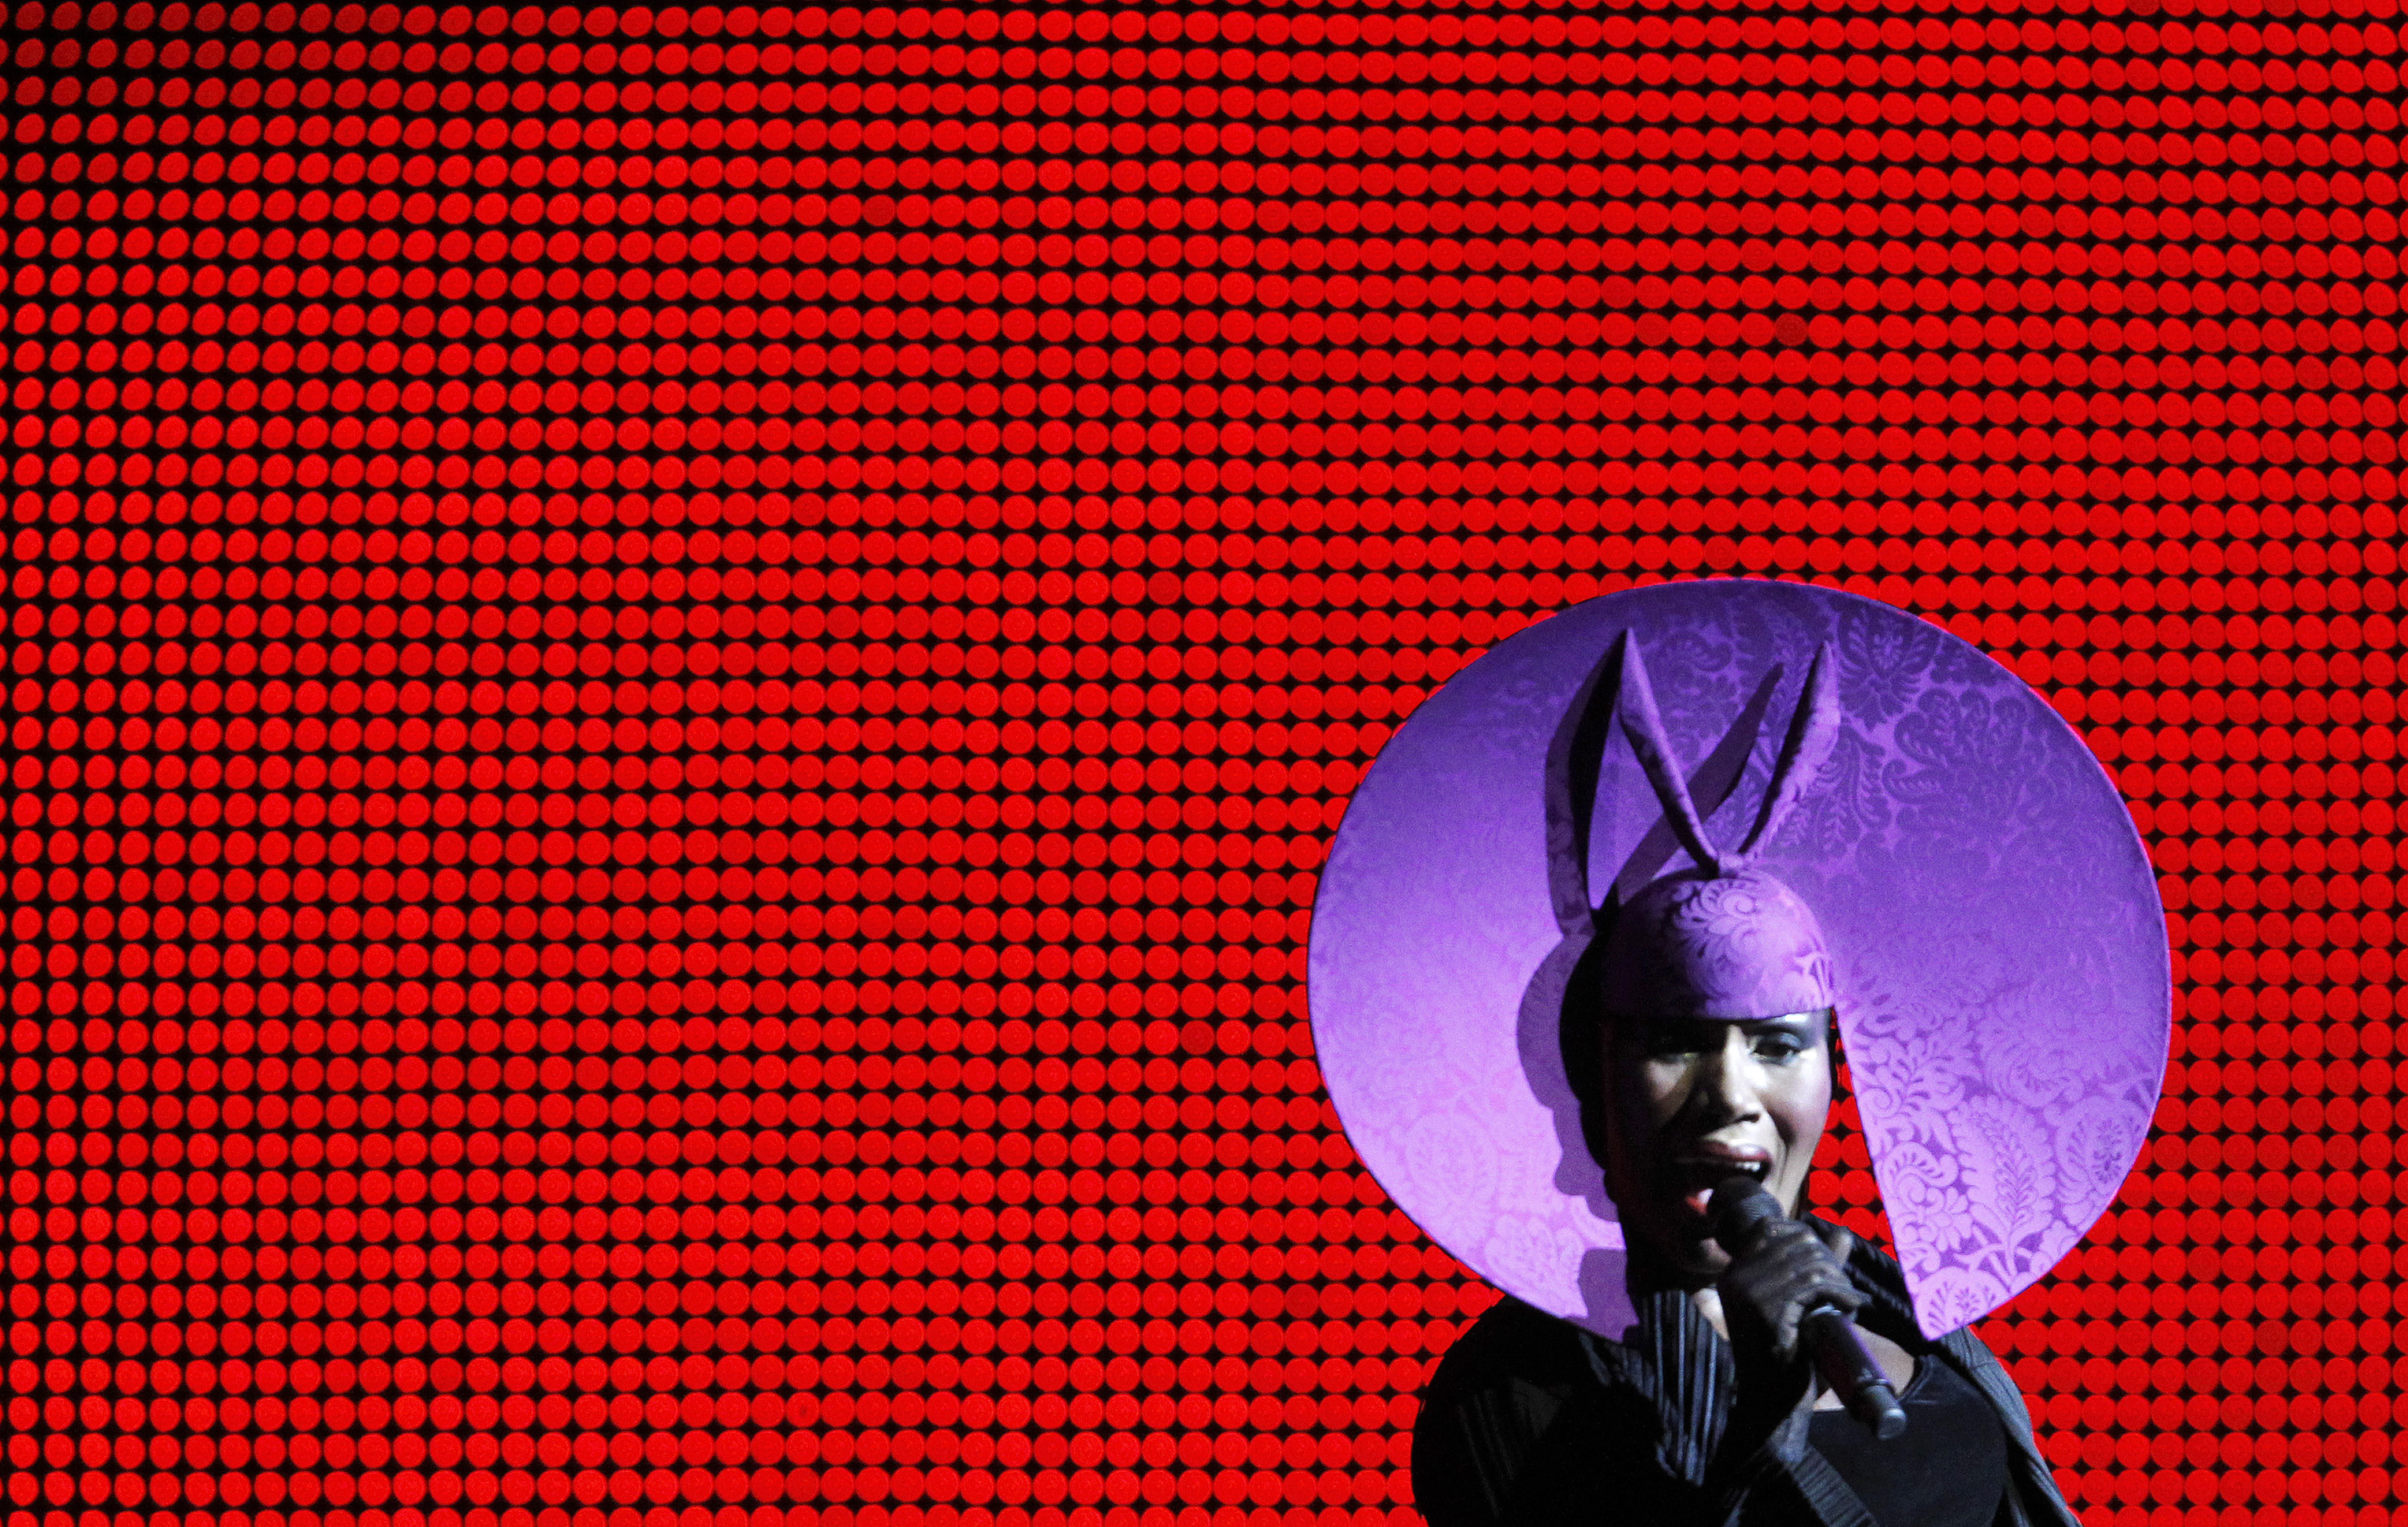 Grace Jones performs during the opening ceremony of the 61st FIFA Congress at the Hallenstadion in Zurich on May 31, 2011